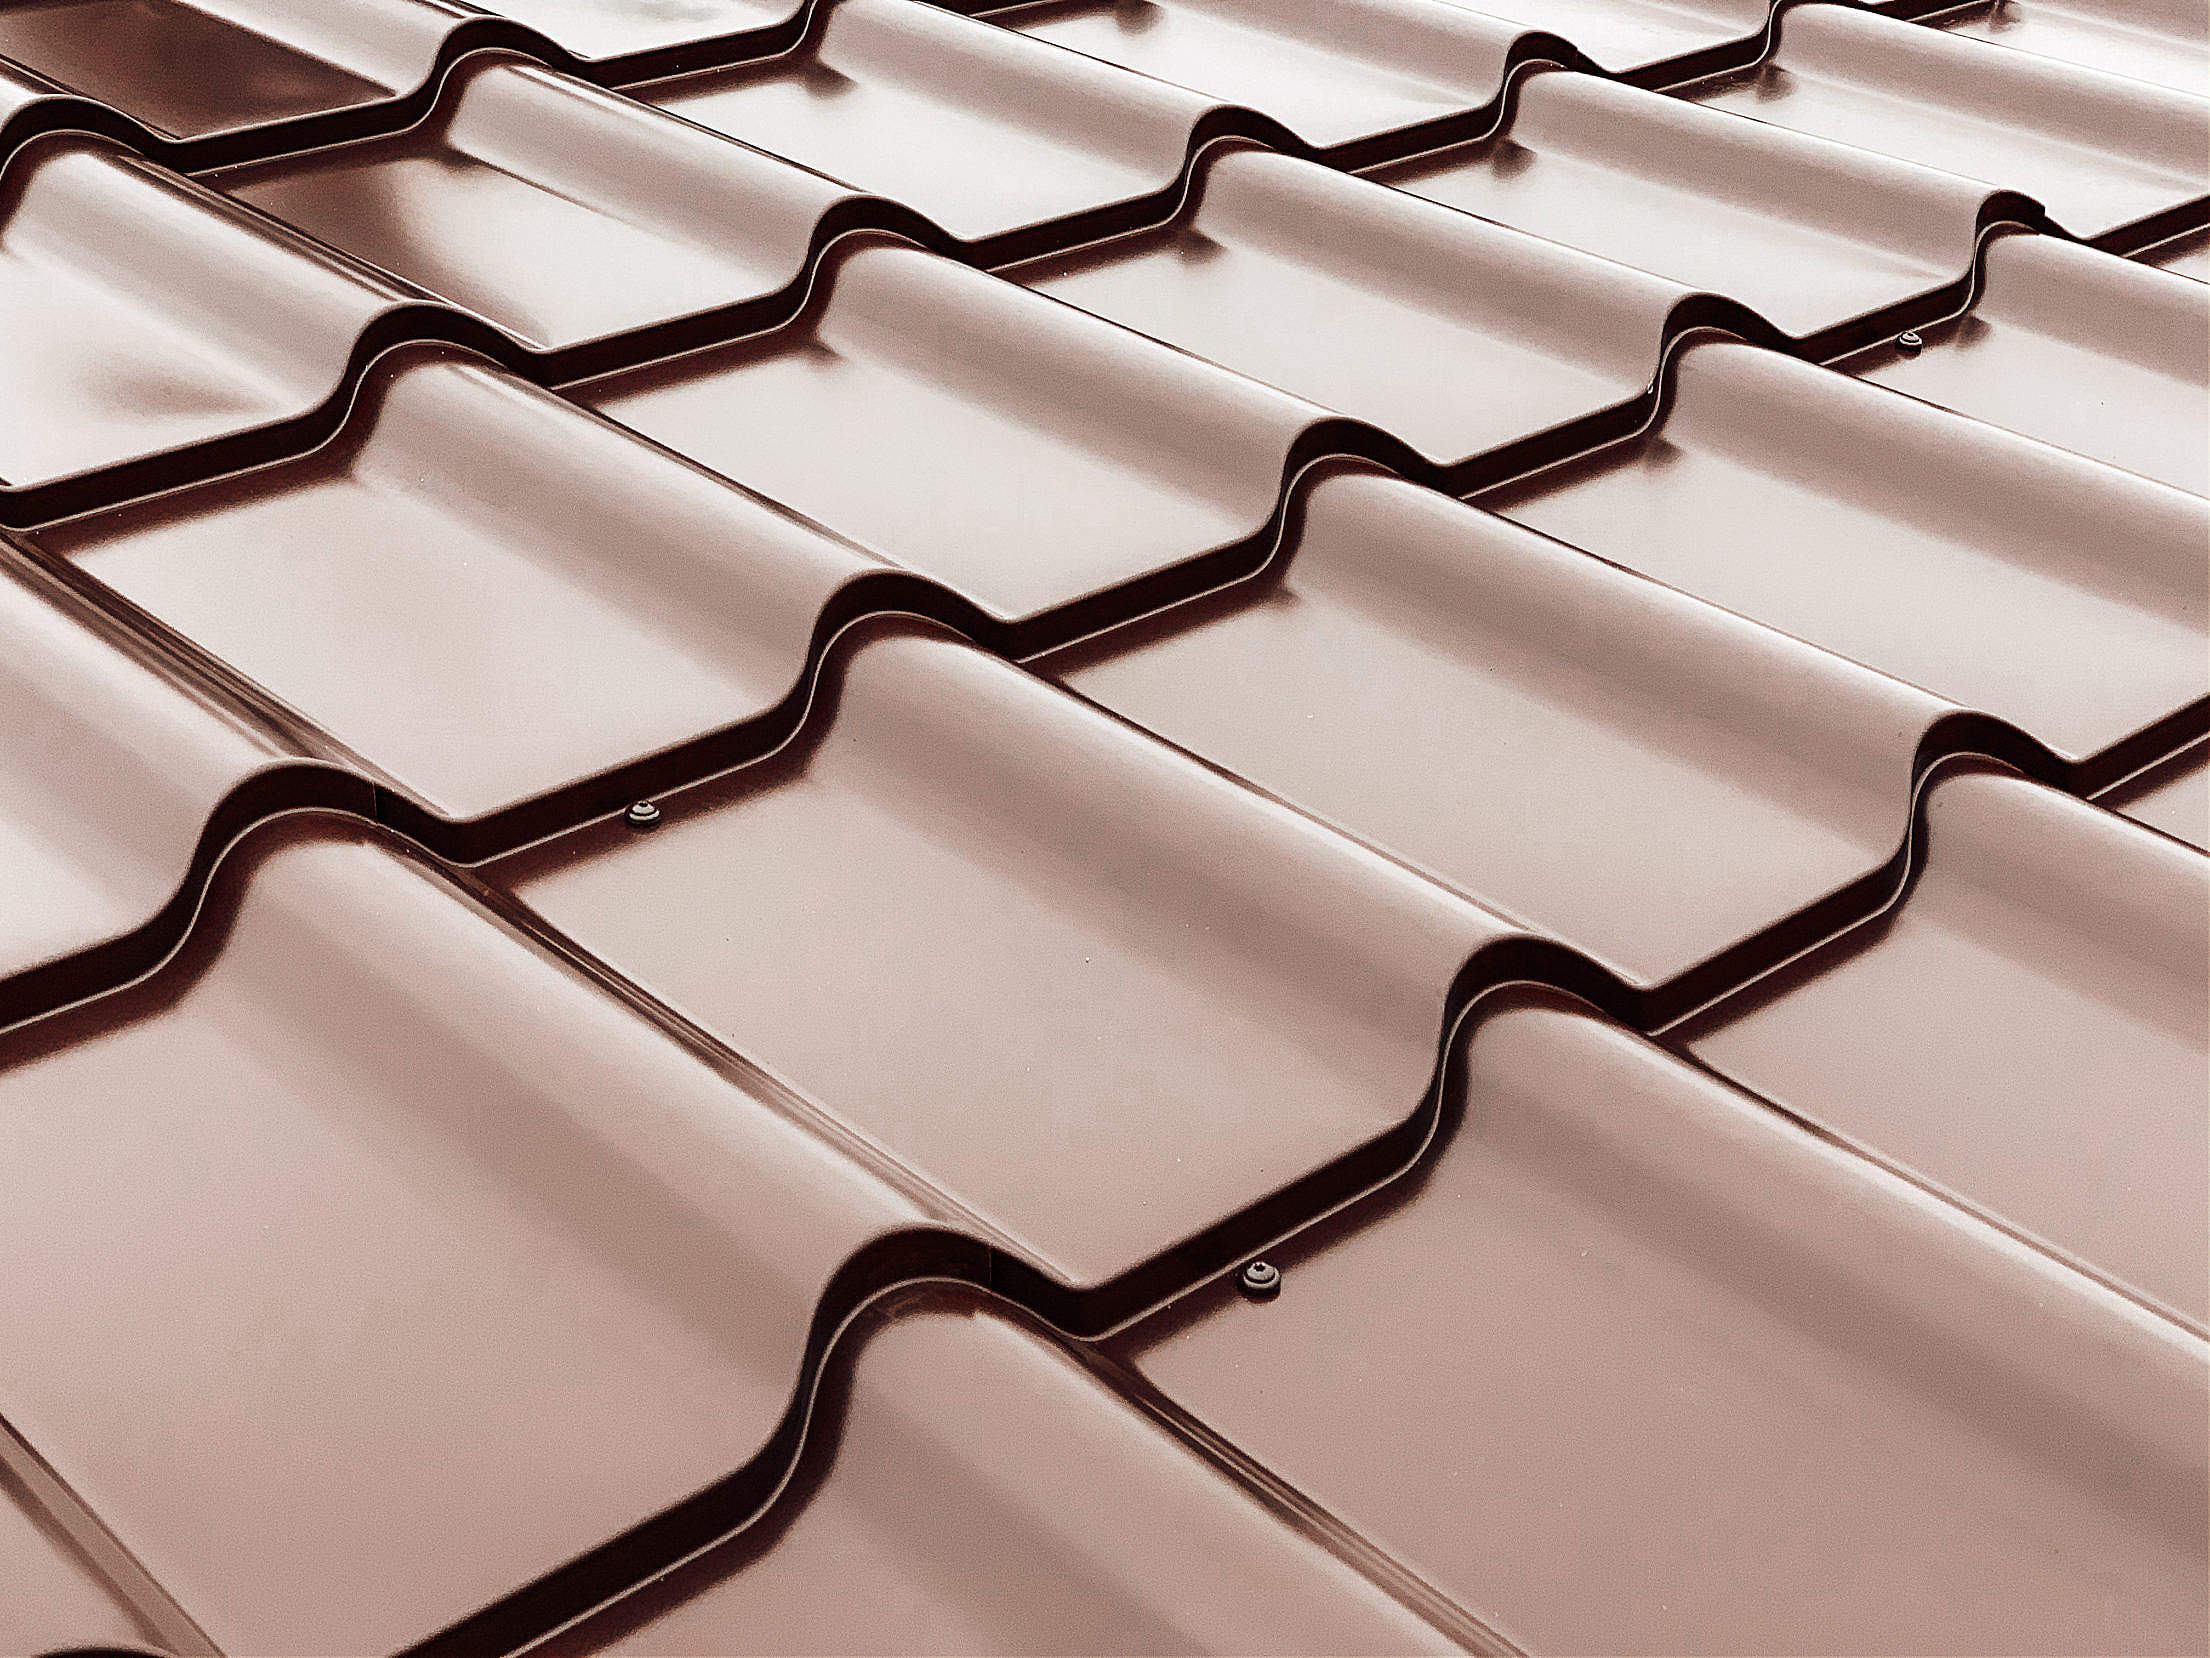 Overlapping Rows of Roof Tiles Free Stock Photo